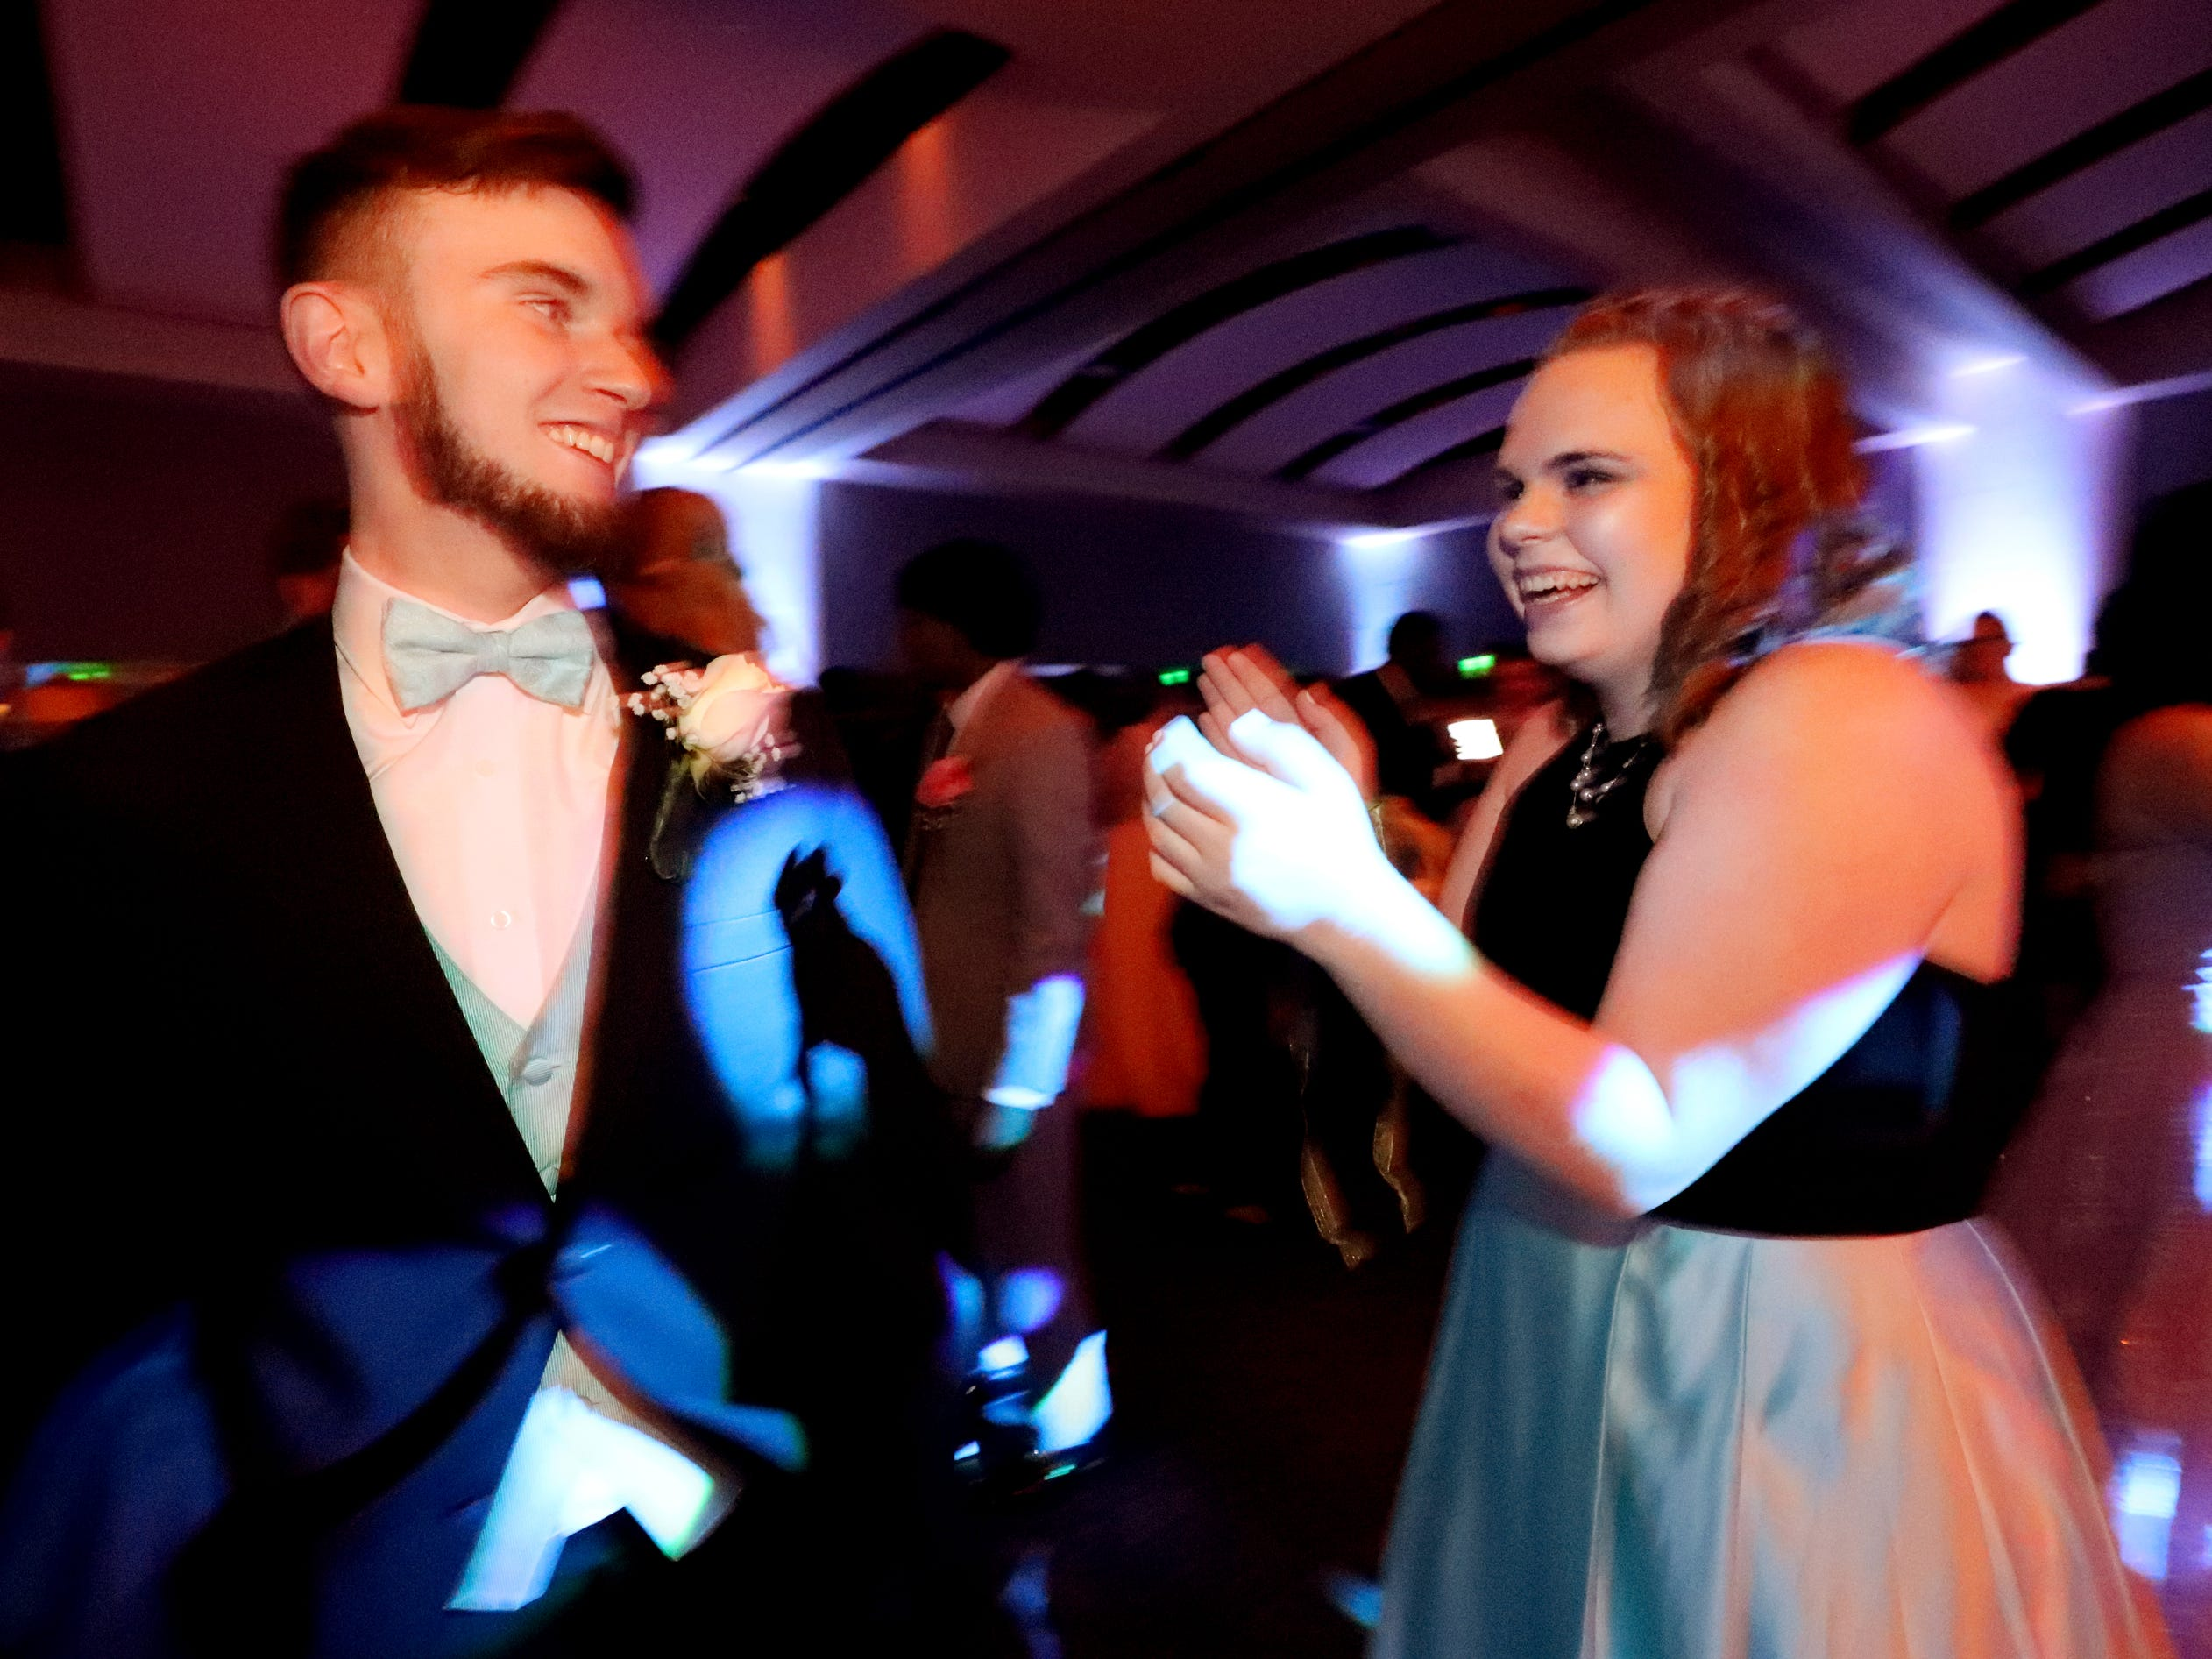 Justin Lane, left and Brianna Kane, right dance together at Blackman's prom on Friday April 12, 2019, at MTSU.